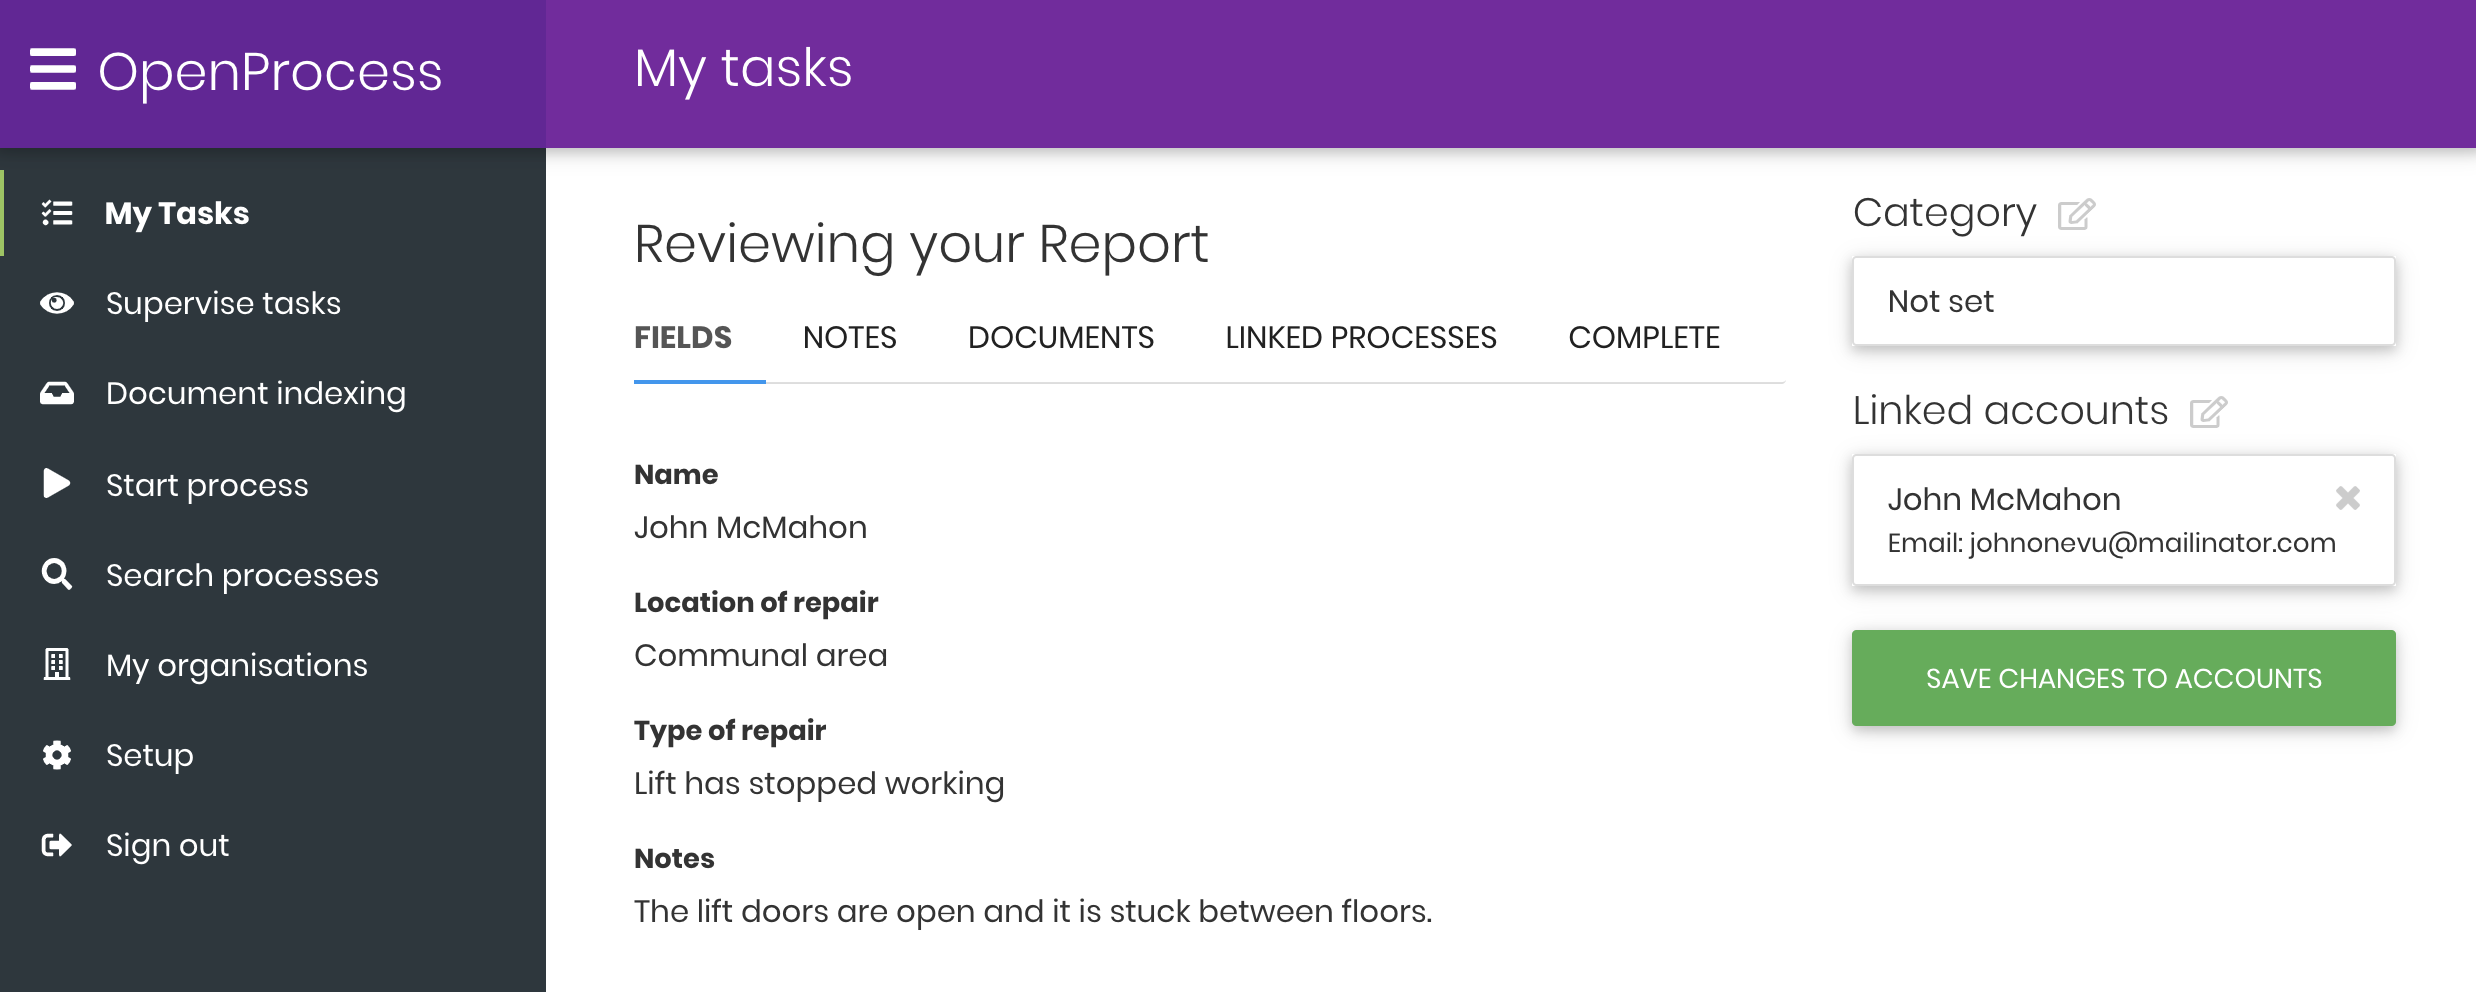 IEG4's Open process showing tasks summary